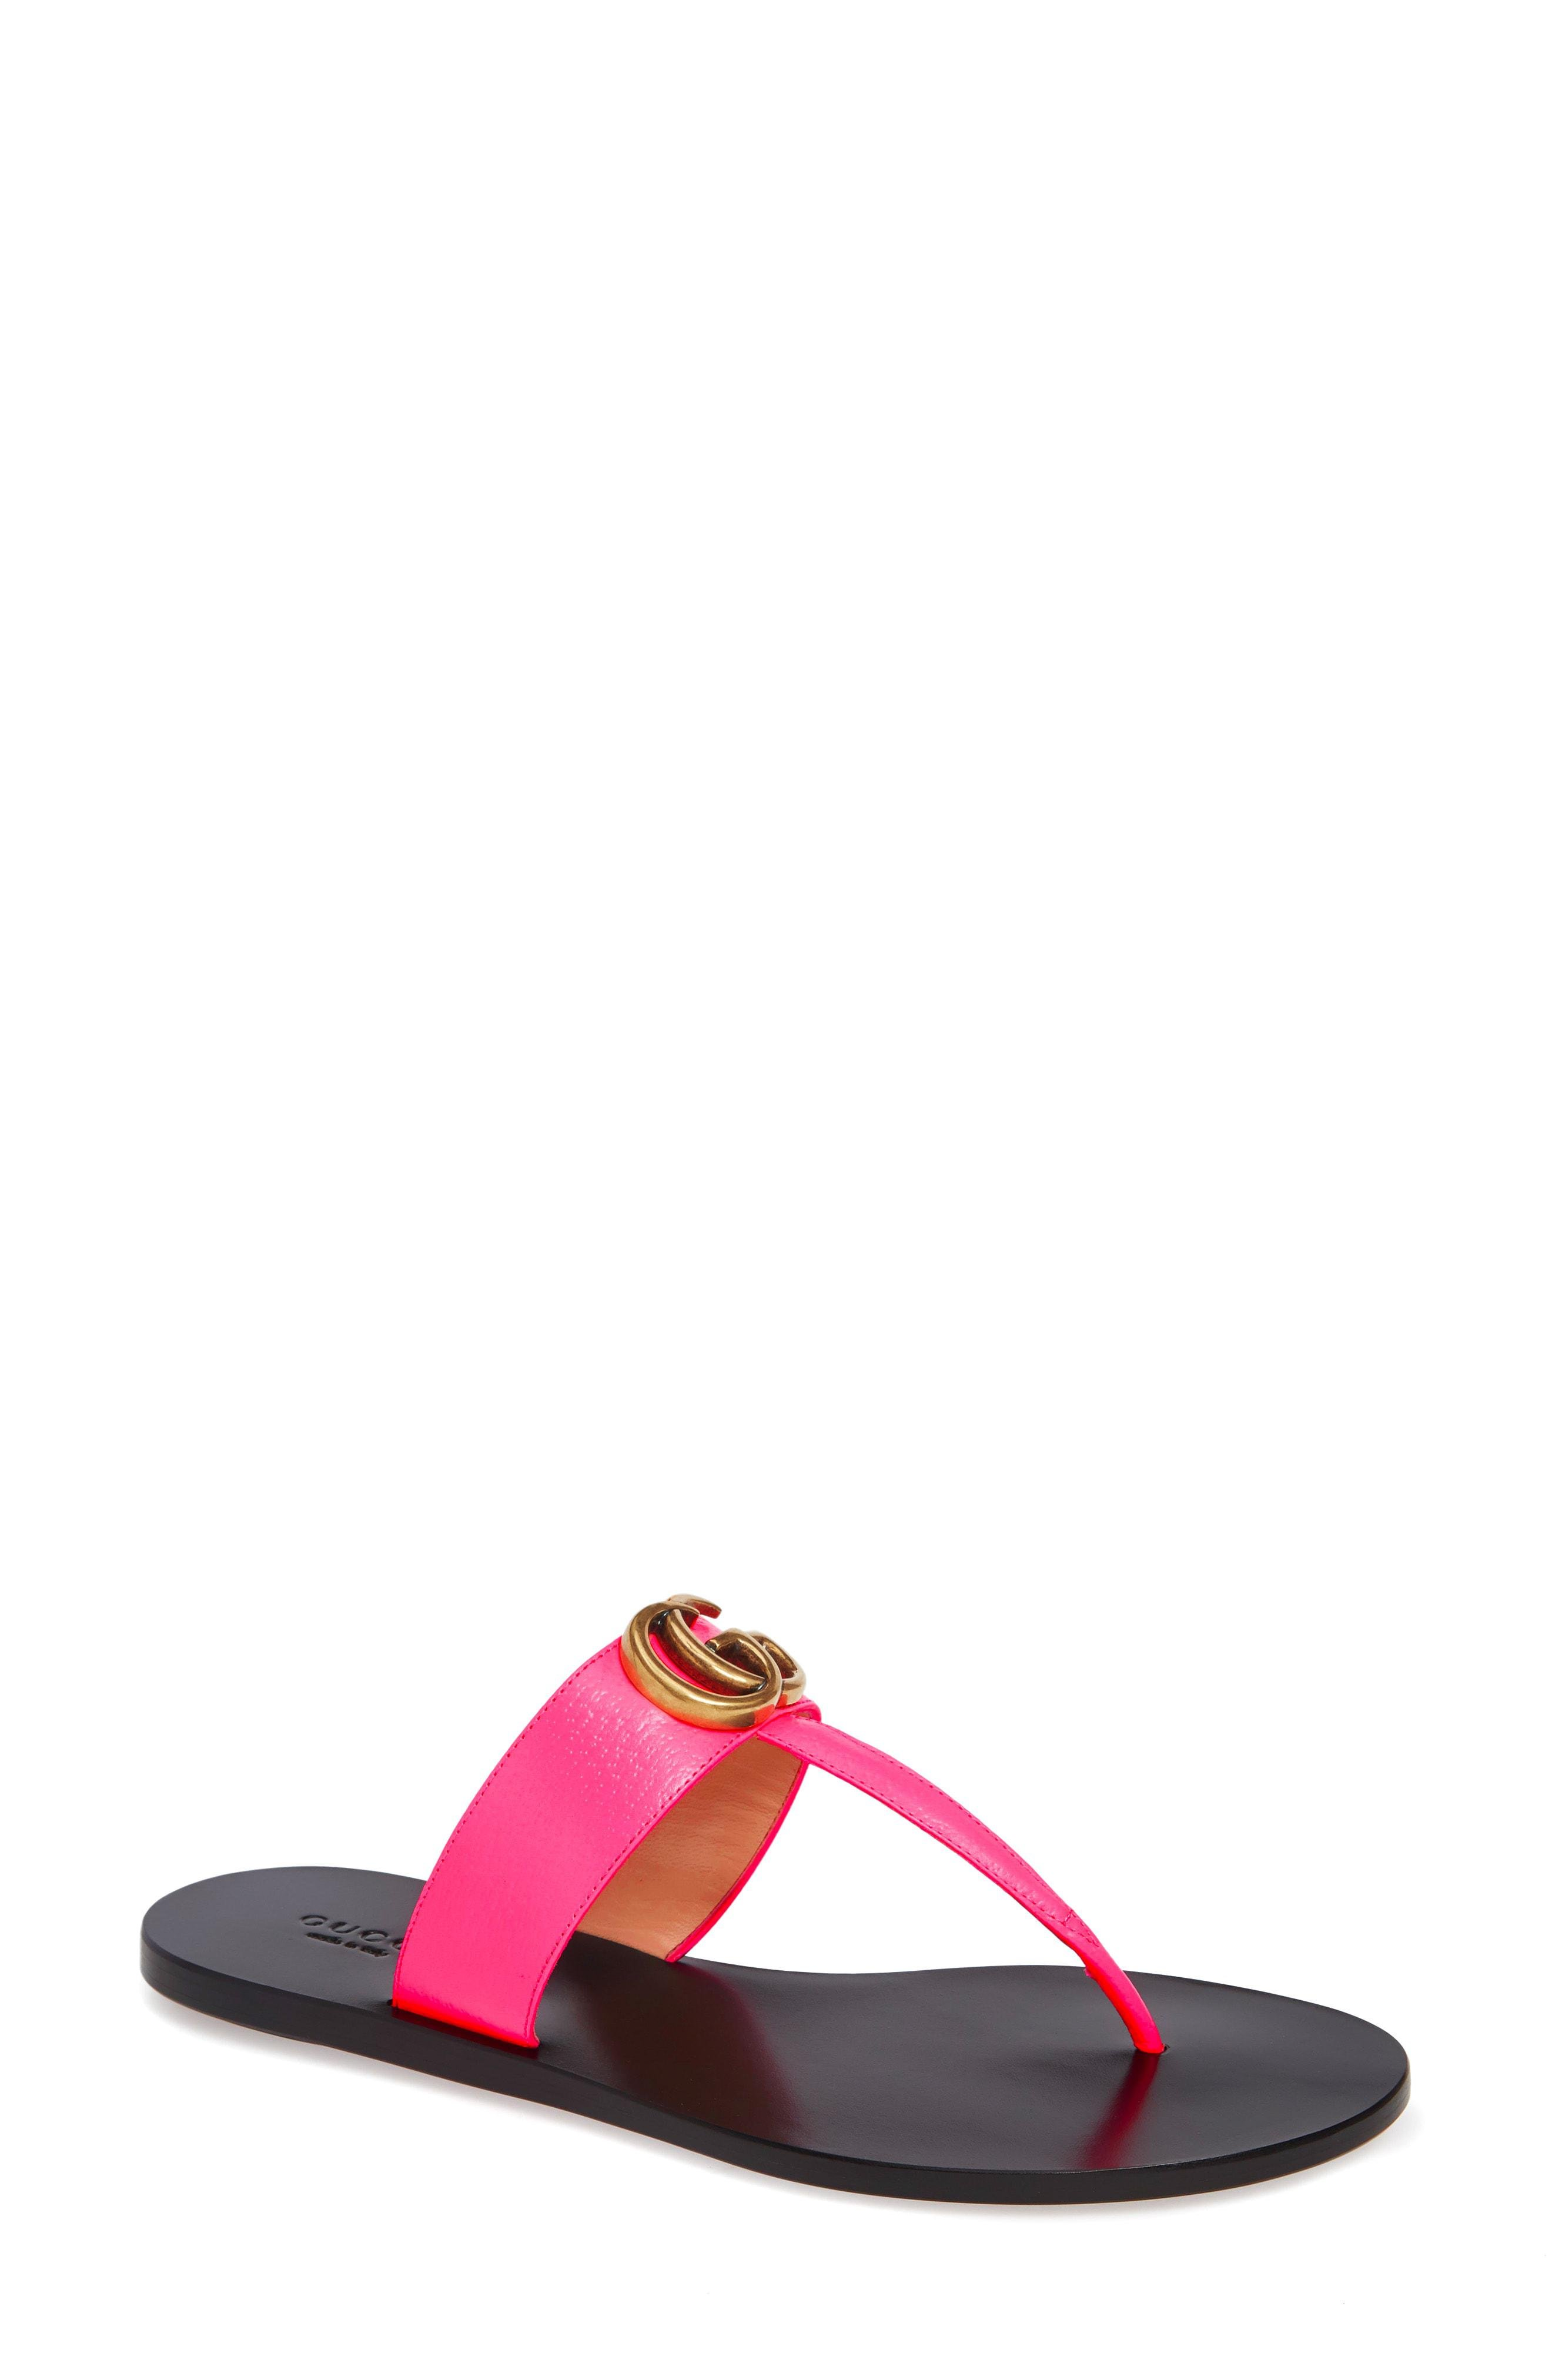 037429111 Lyst - Gucci Marmont GG Thong Leather Sandals in Pink